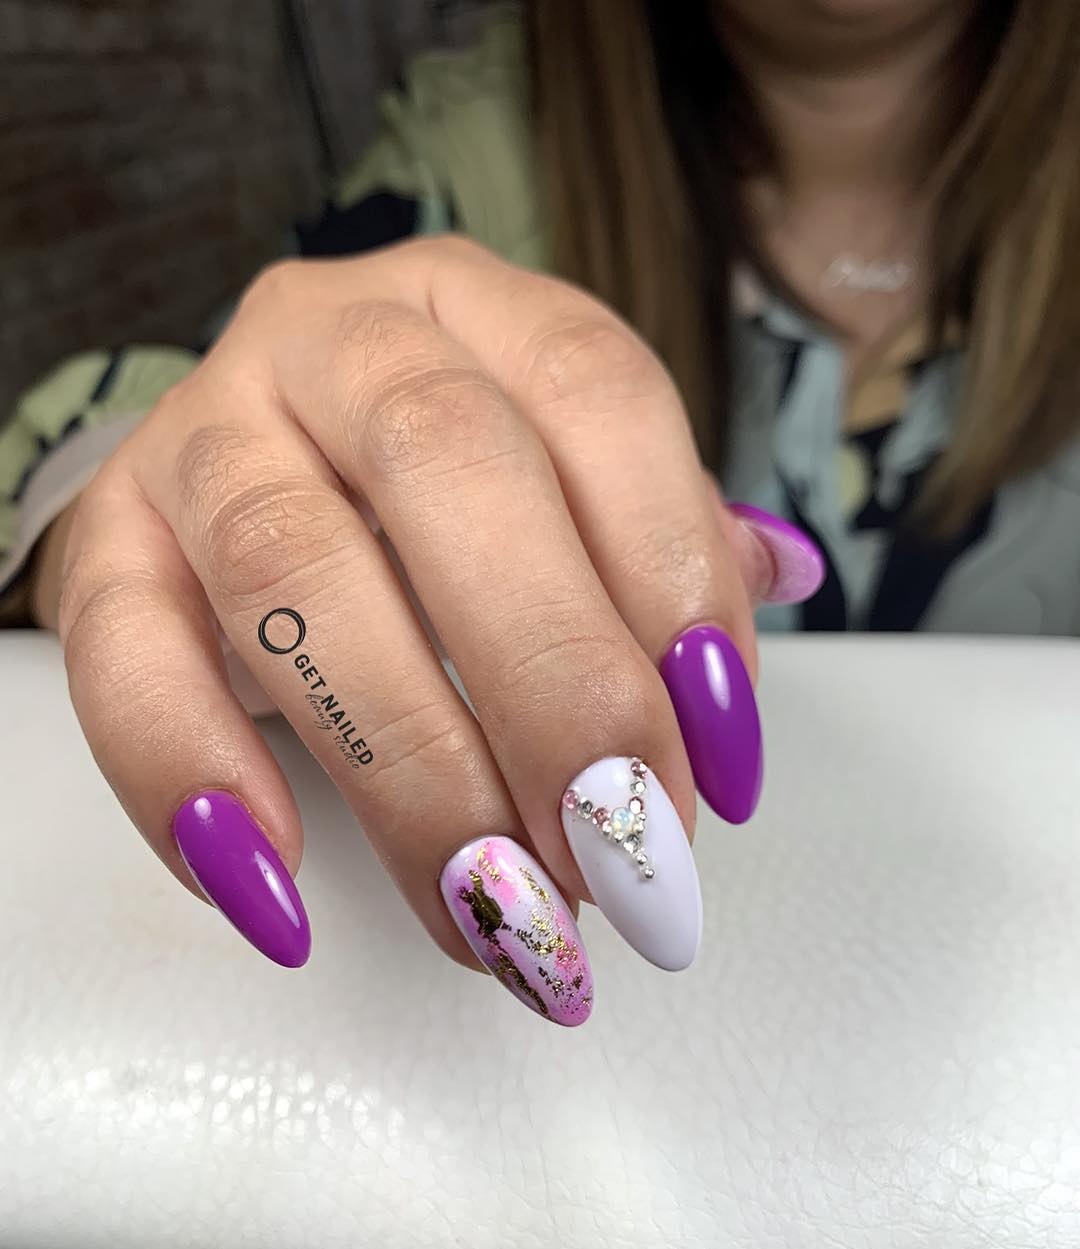 Purple magic Nails done by MargaritaYou can book your appointment on getnailed.co, through DM, WhatsApp +34 680 576 151 or simply by leaving a comment ..luxiogel